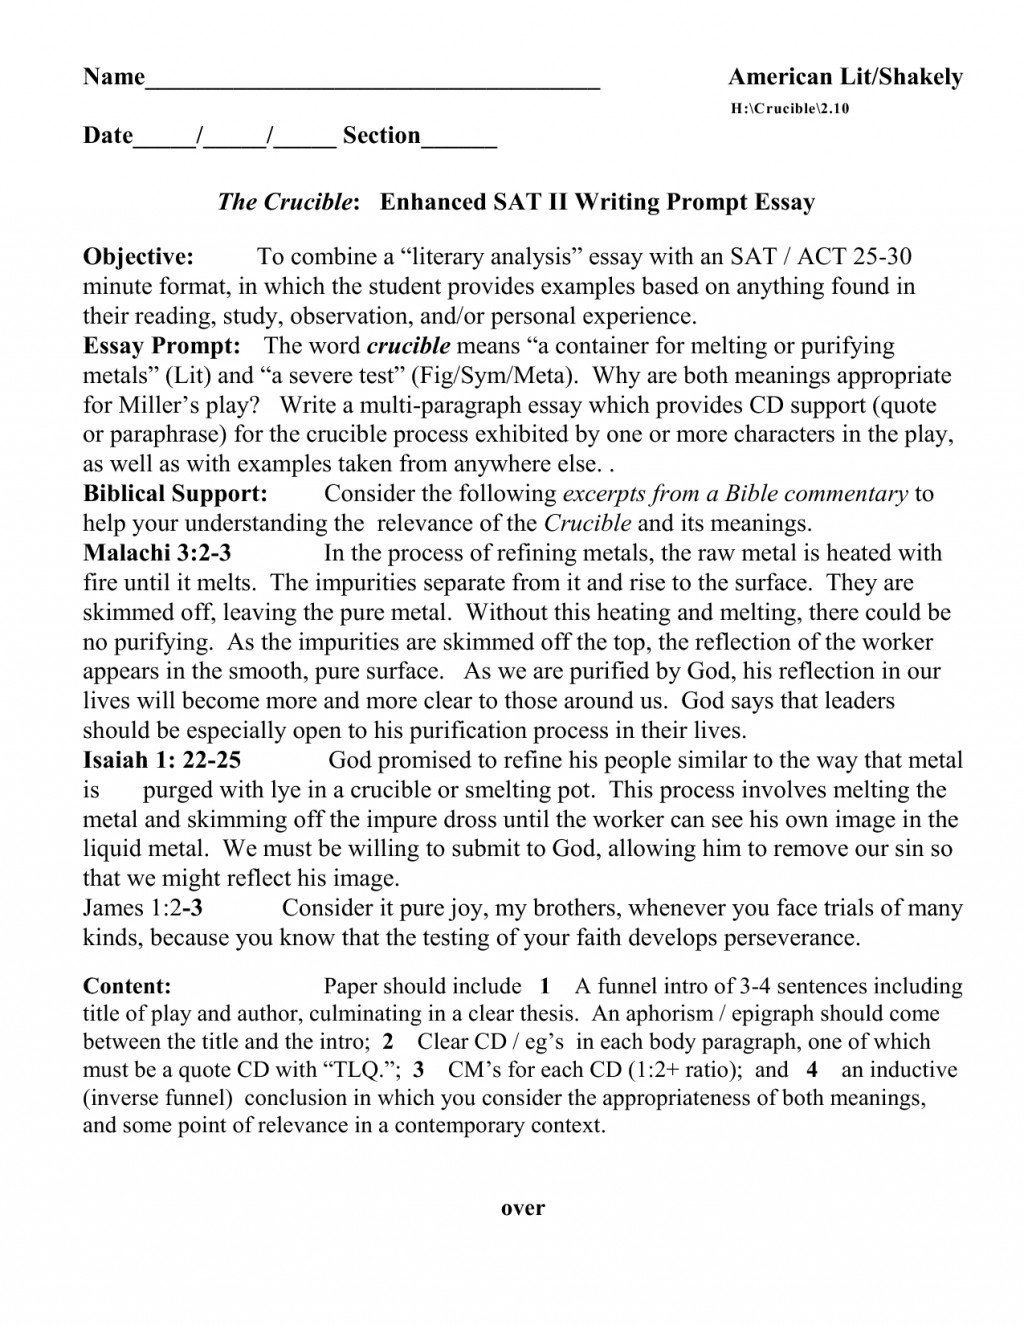 005 Sat Essay Quotes Quotesgram Is There An On The L Sample Astounding Prompts And Responses Pdf Large